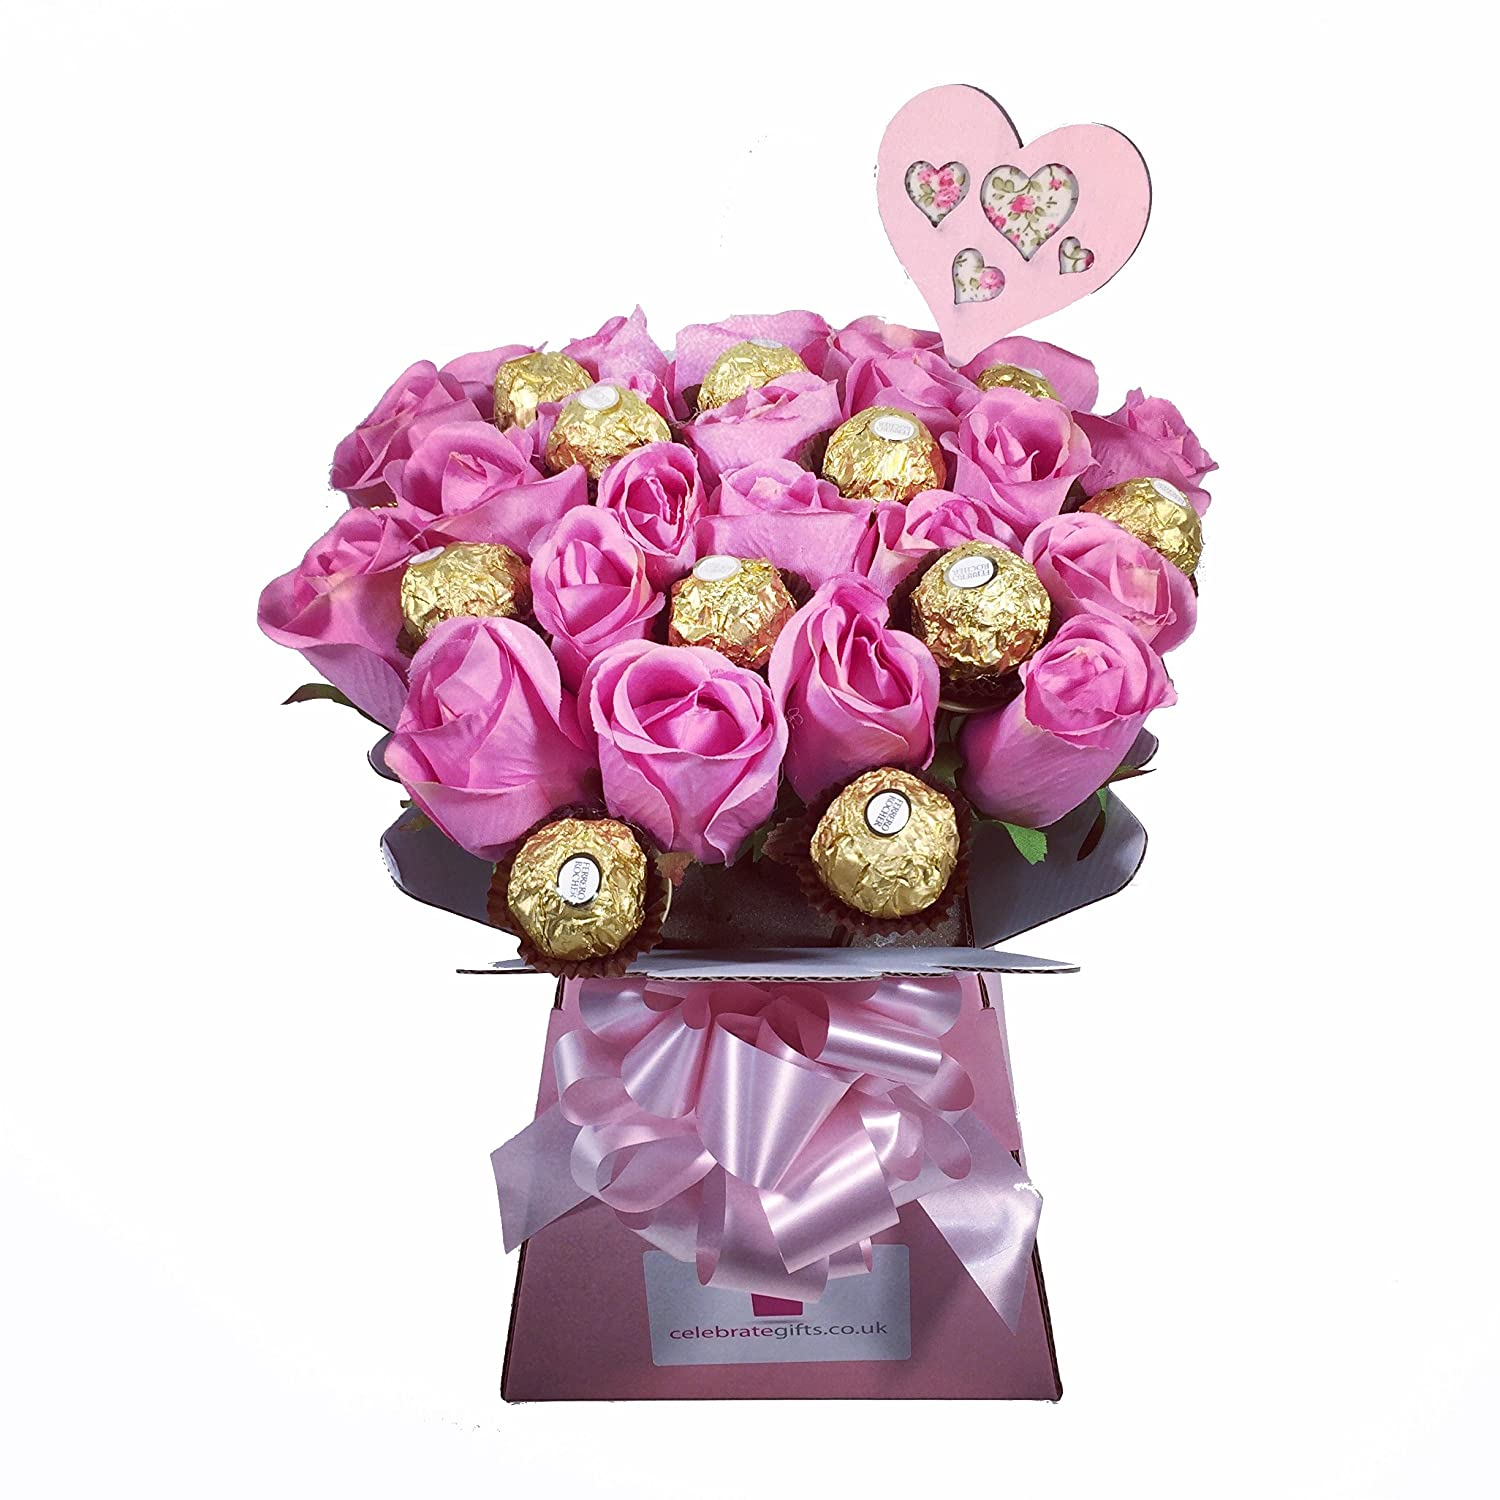 Luxury silk pink roses and ferrero rocher chocolate bouquet amazon luxury silk pink roses and ferrero rocher chocolate bouquet amazon grocery izmirmasajfo Images